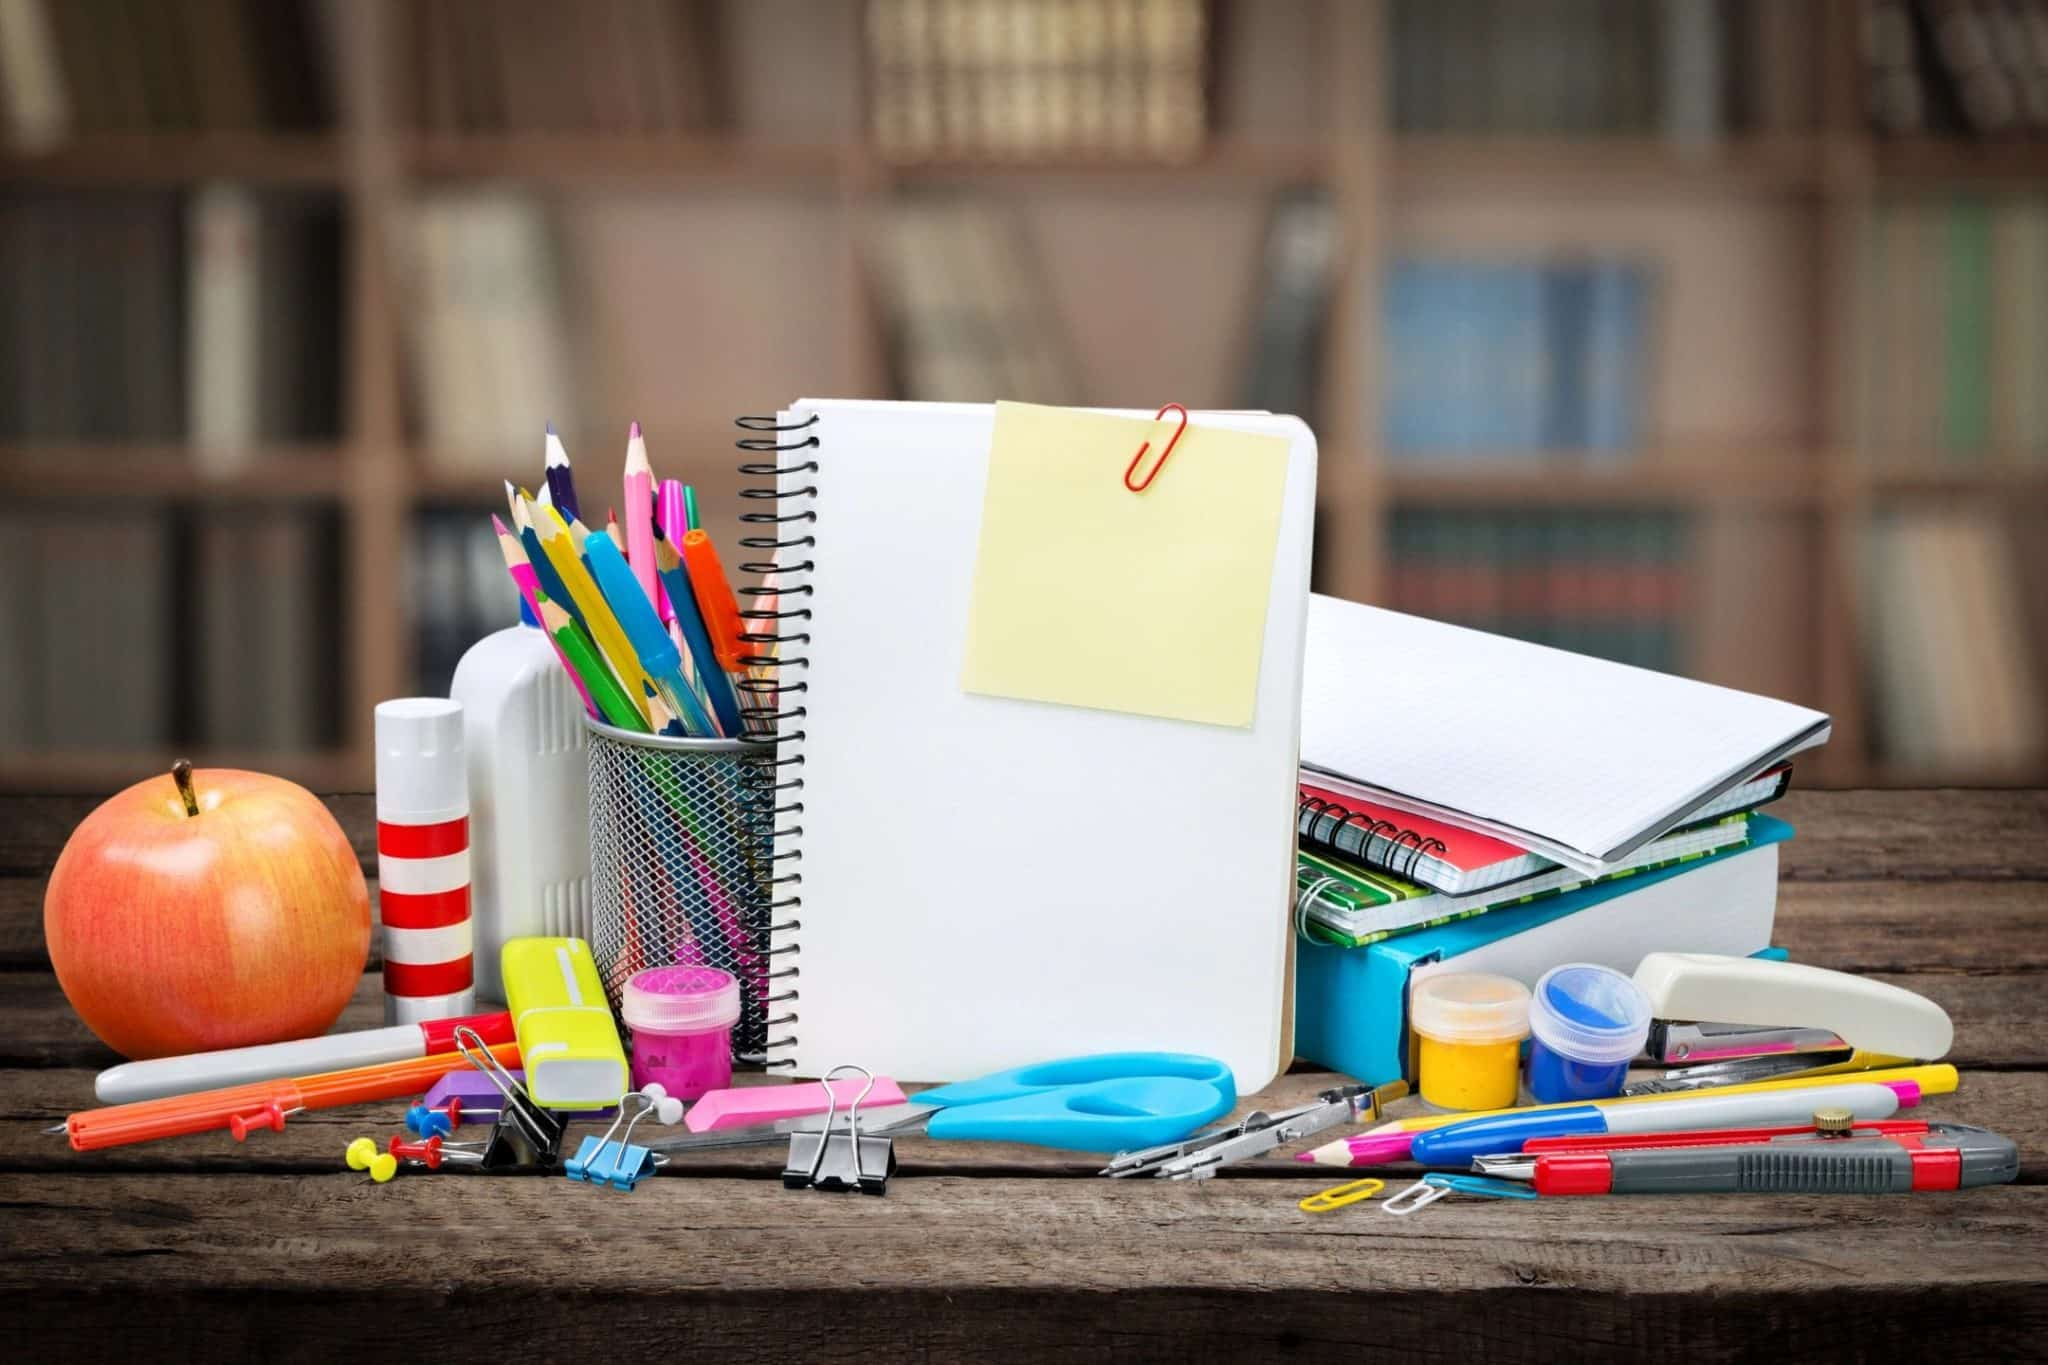 Back To School Organizing Ideas For A Tidy Home and Stress-Free School Year